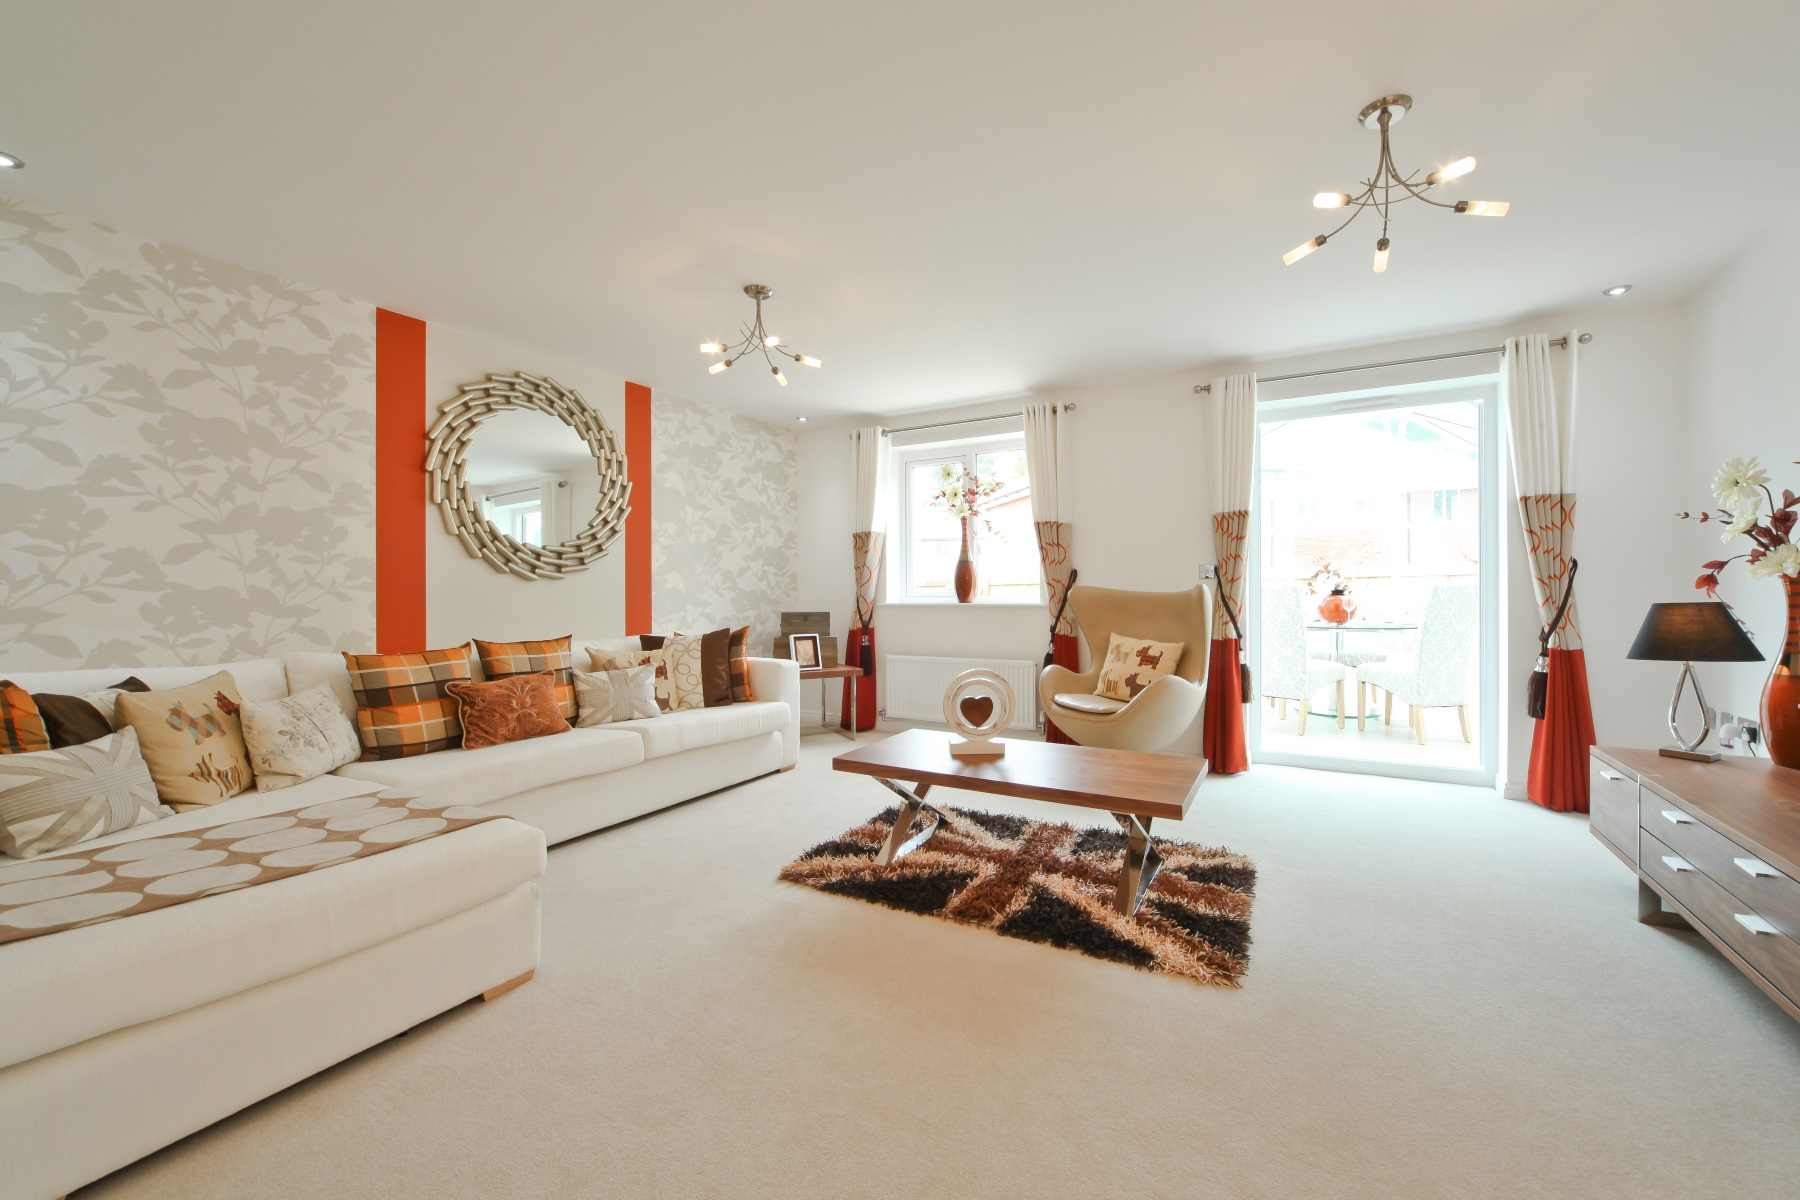 TW Exeter - Sherford - The Danbruy example living room